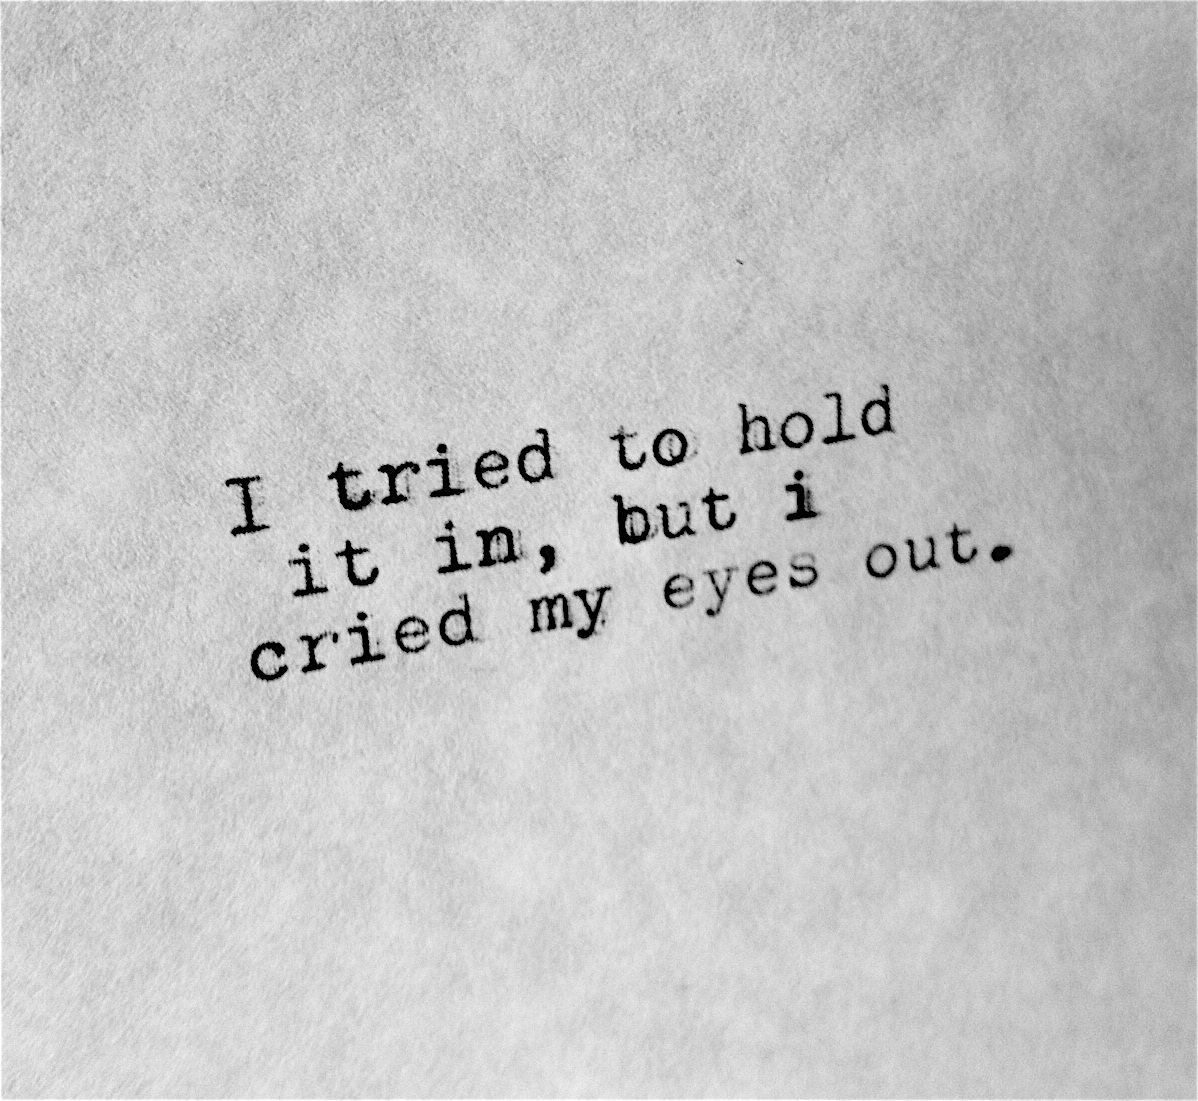 Crying Quotes About Love Tumblr : 30 Best Collection Of Sad Crying Quotes Unique Viral - 1198x1101 ...